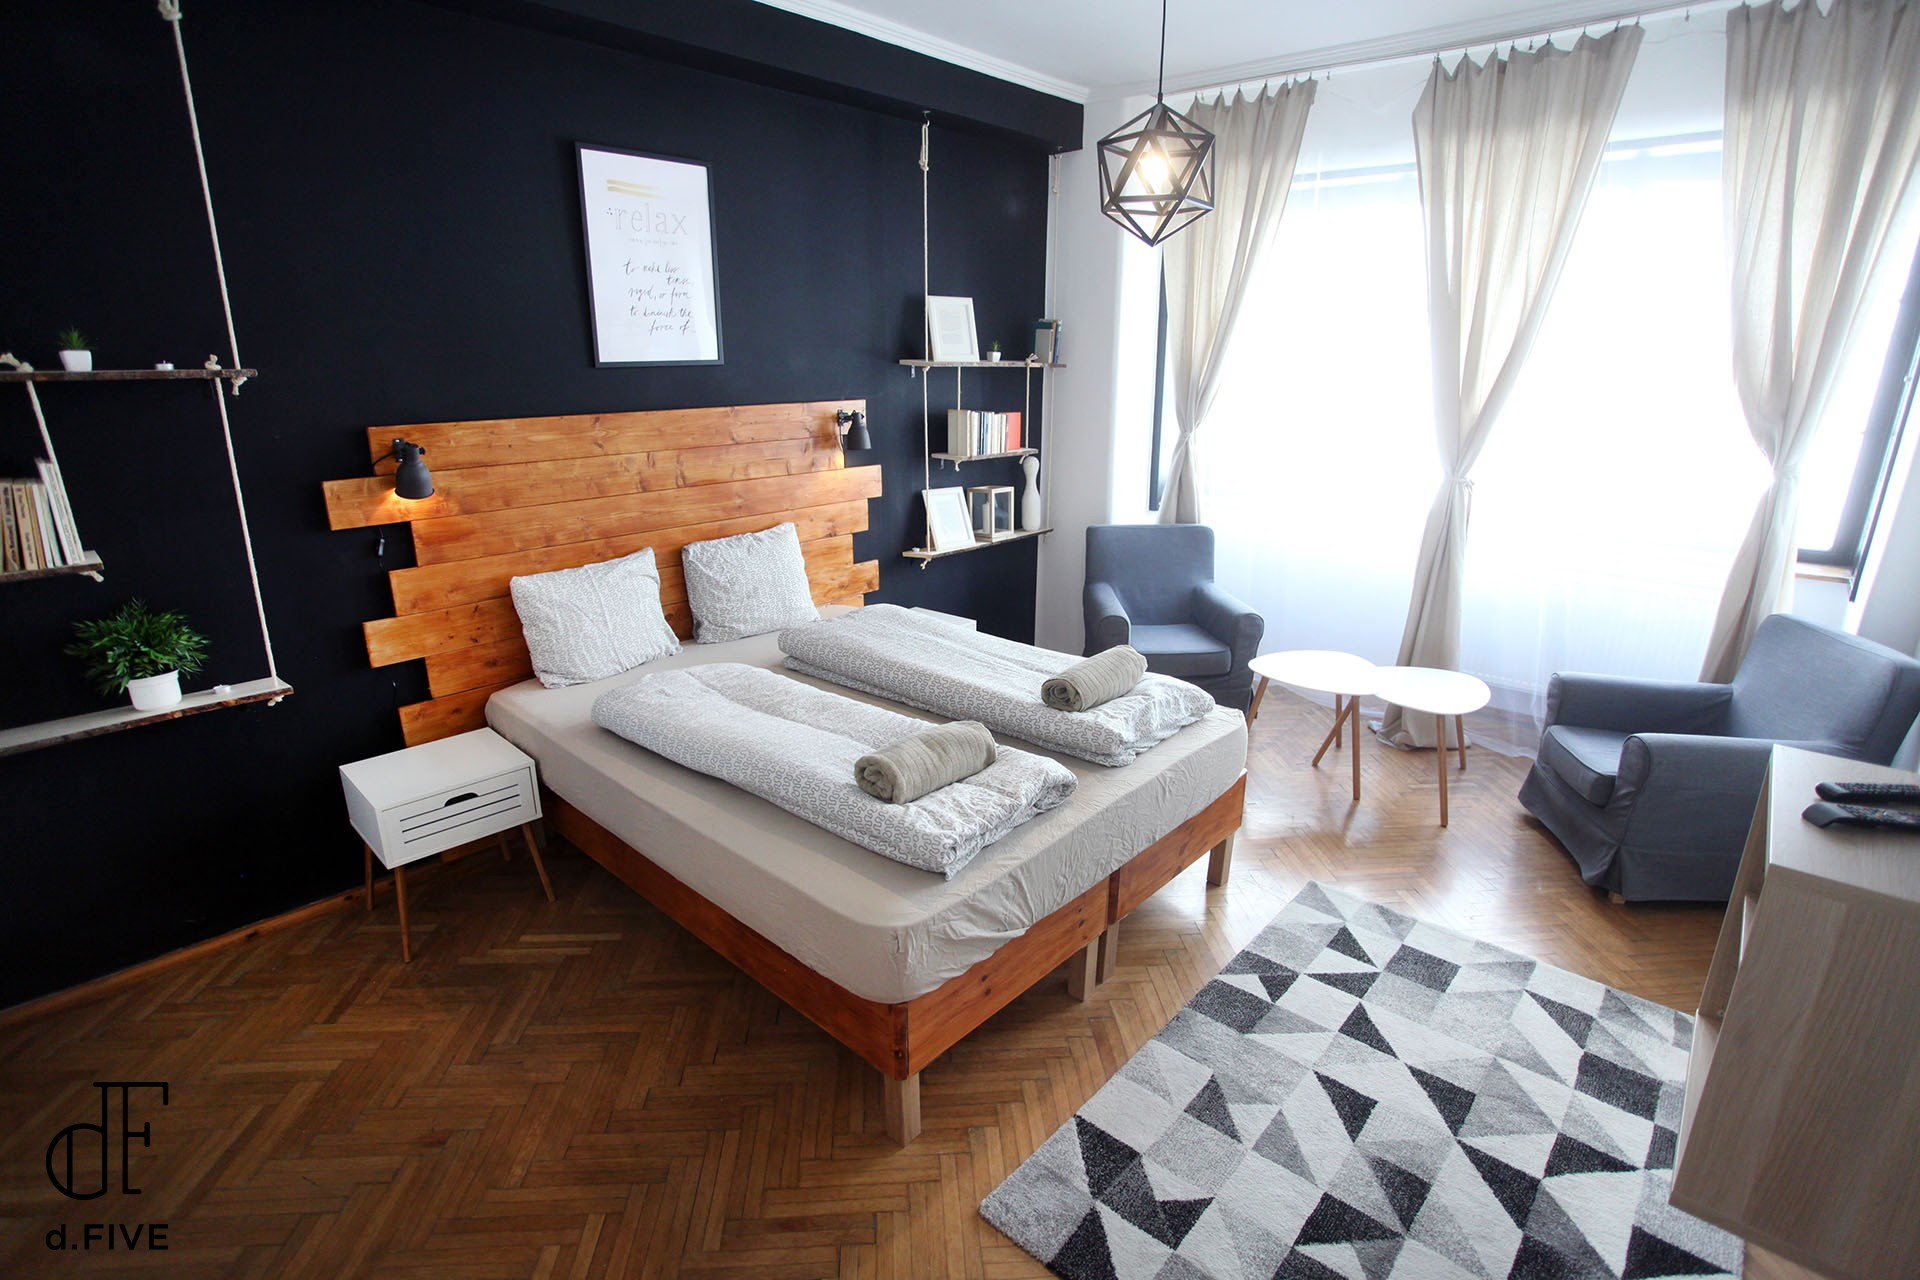 d.FIVE Inspire Apartment Budapest